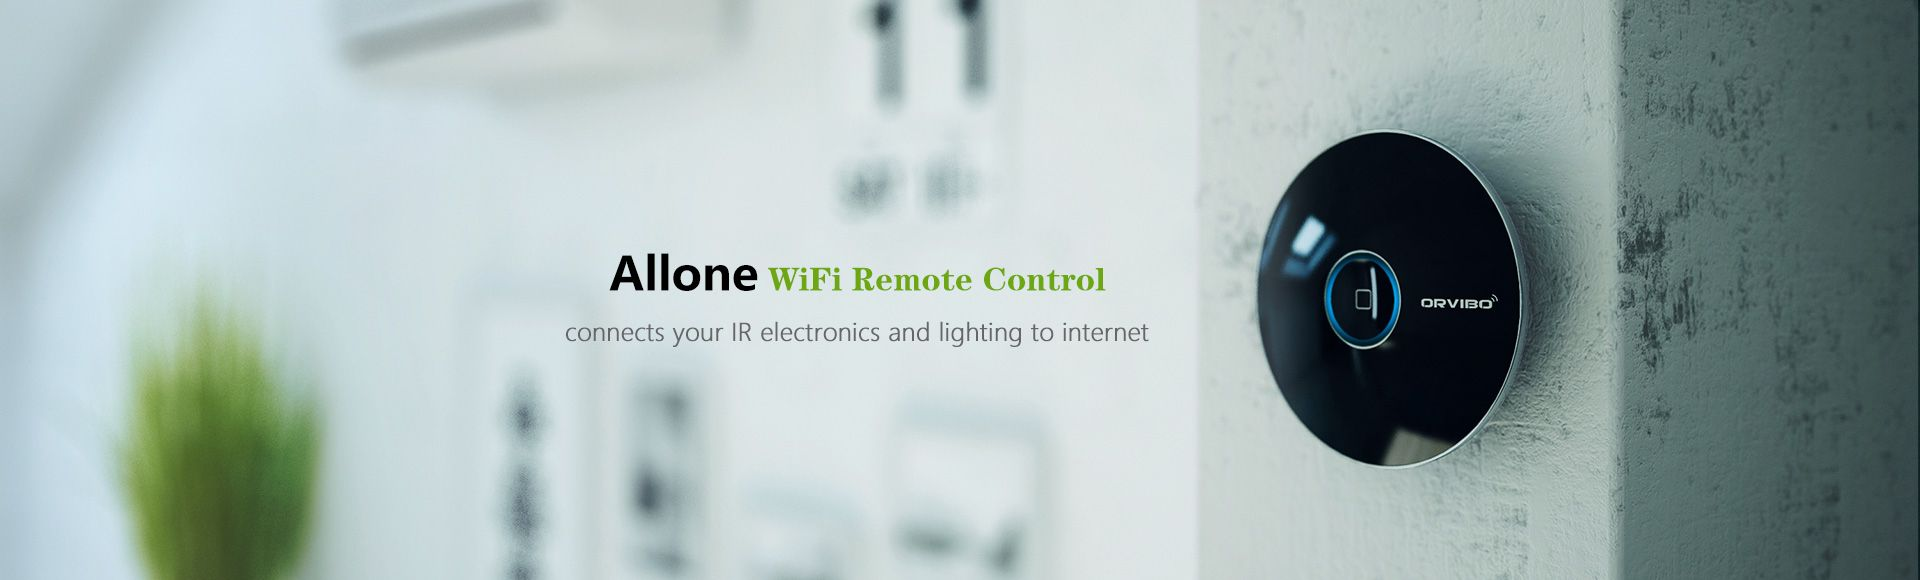 ORVIBO Allone WiFi Remote Control - Connects your IR electronics and lighting to internet